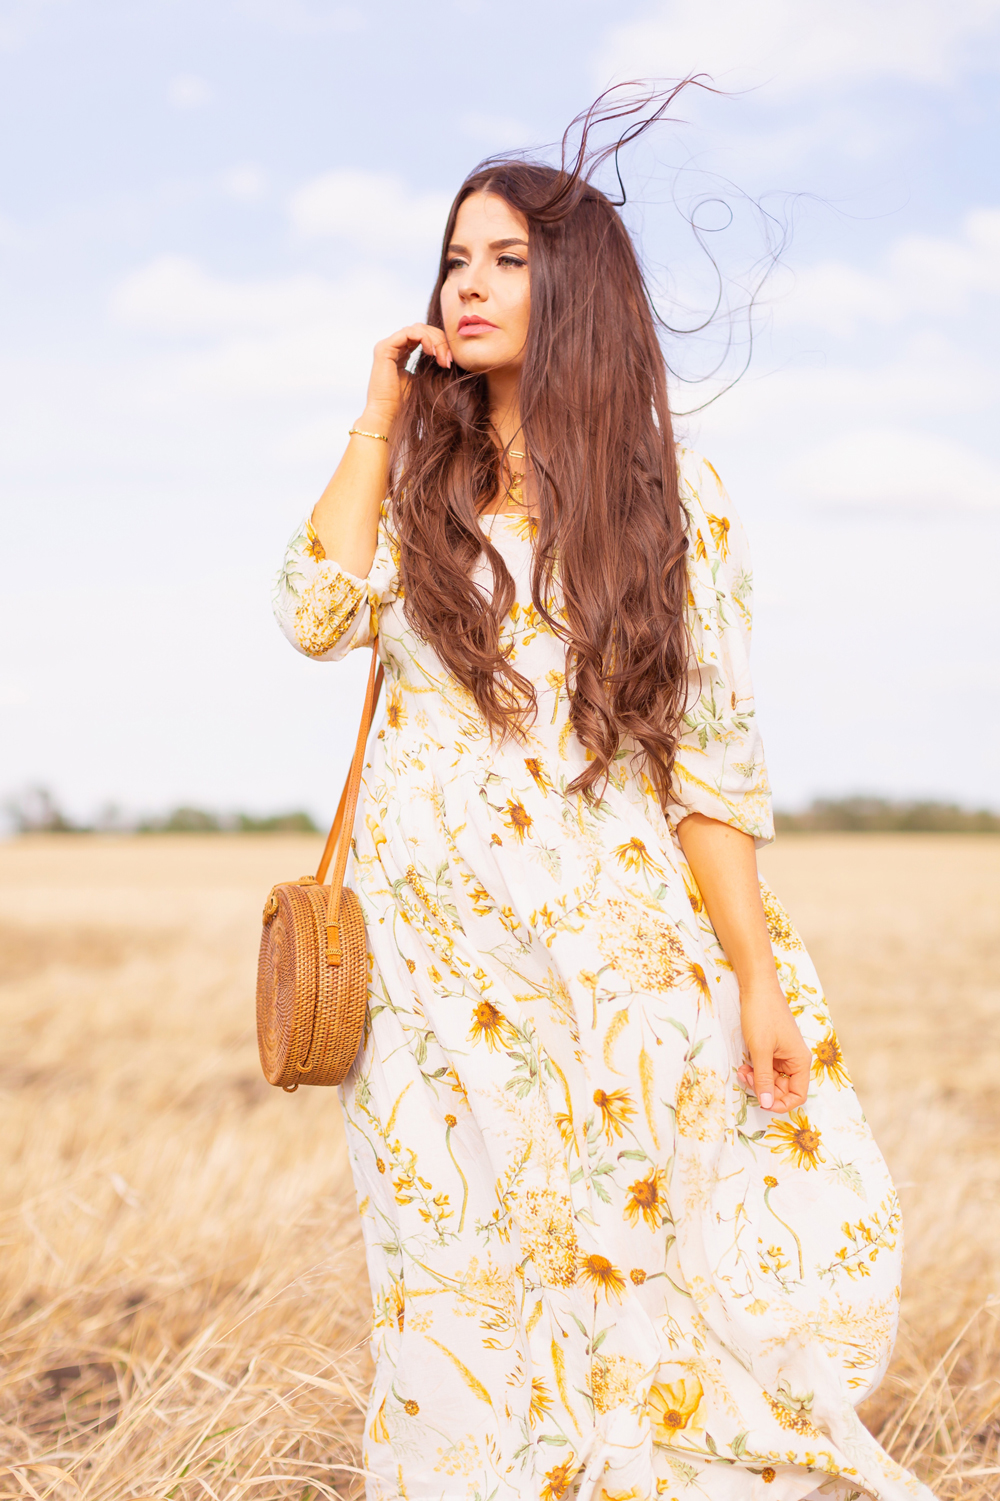 H&M Wildflower Collection Review | Brunette woman wearing a H&M A Meadow of Wildflowers Collection Long Crinkled Dress and a Balinese round rattan bag in a wheat field in the wind | H&M Wildflower Collection Canada | H&M Wildflower Collection Canada | Spring/Summer 2021 Trends | The Best Cotton Dresses 2021 | Boho Spring / Summer Outfit Ideas | Alberta Wildflower Field | Cottage Core Fashion | Cottagecore Outfits | Calgary Creative Lifestyle & Fashion Blogger // JustineCelina.com